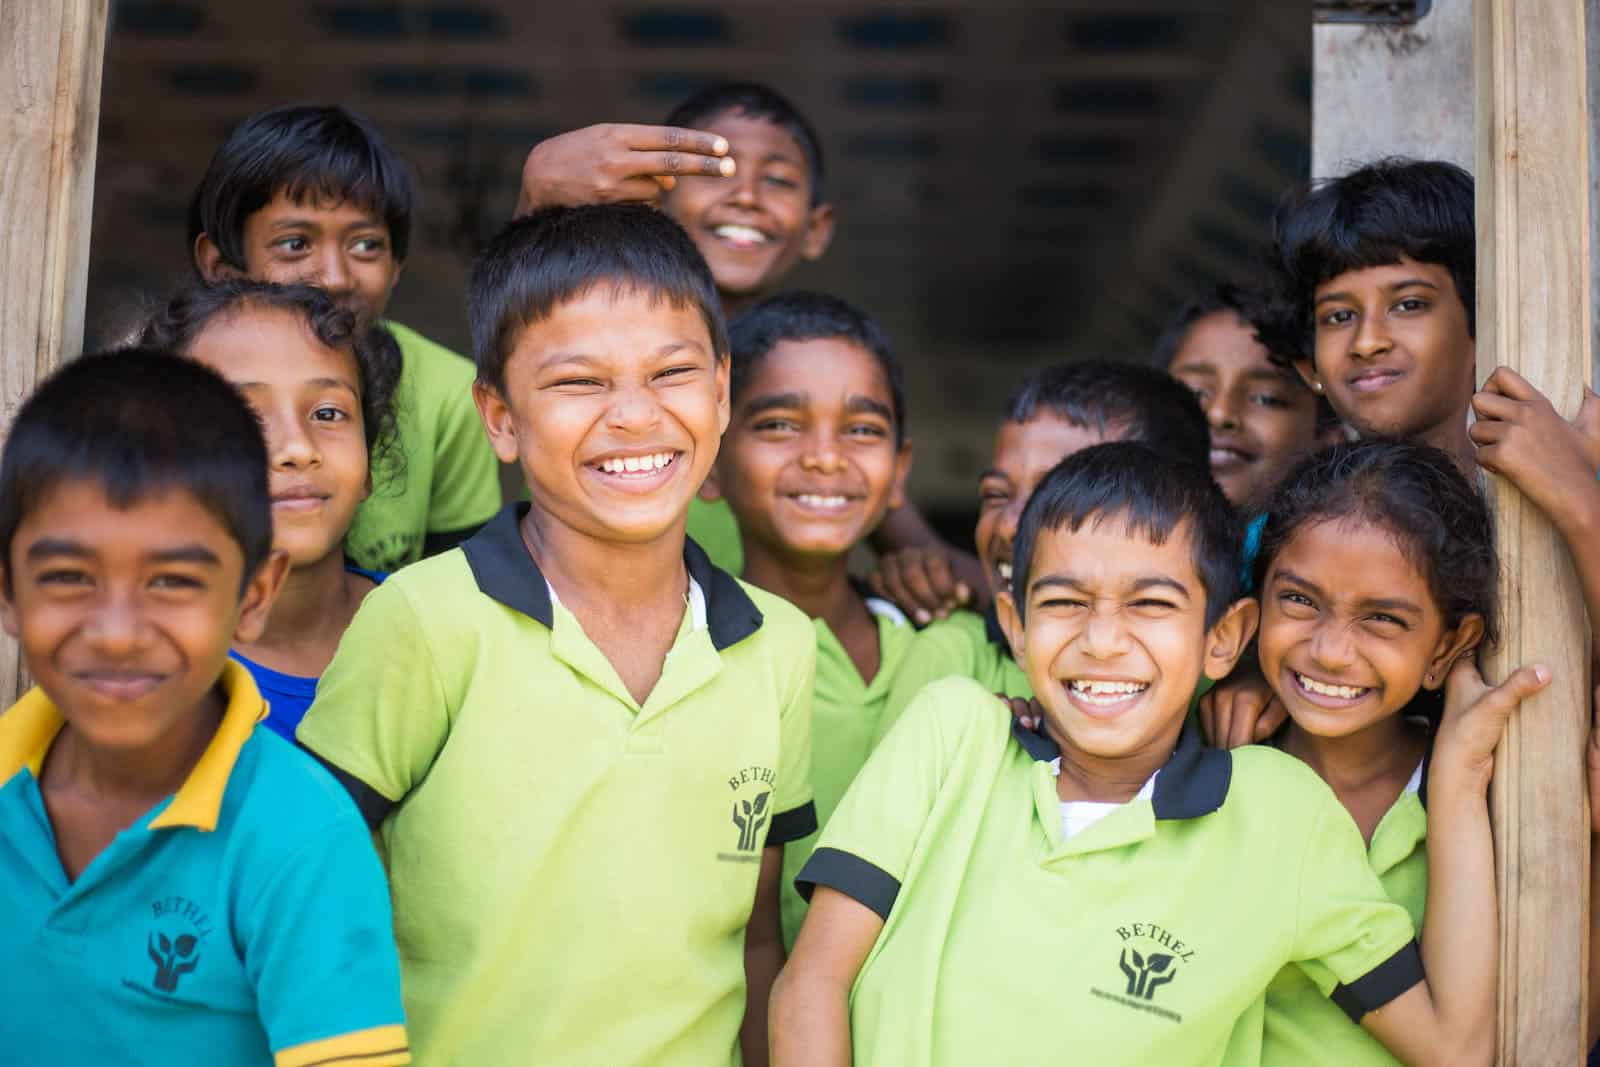 A group of children in lime green shirts smile at the camera.